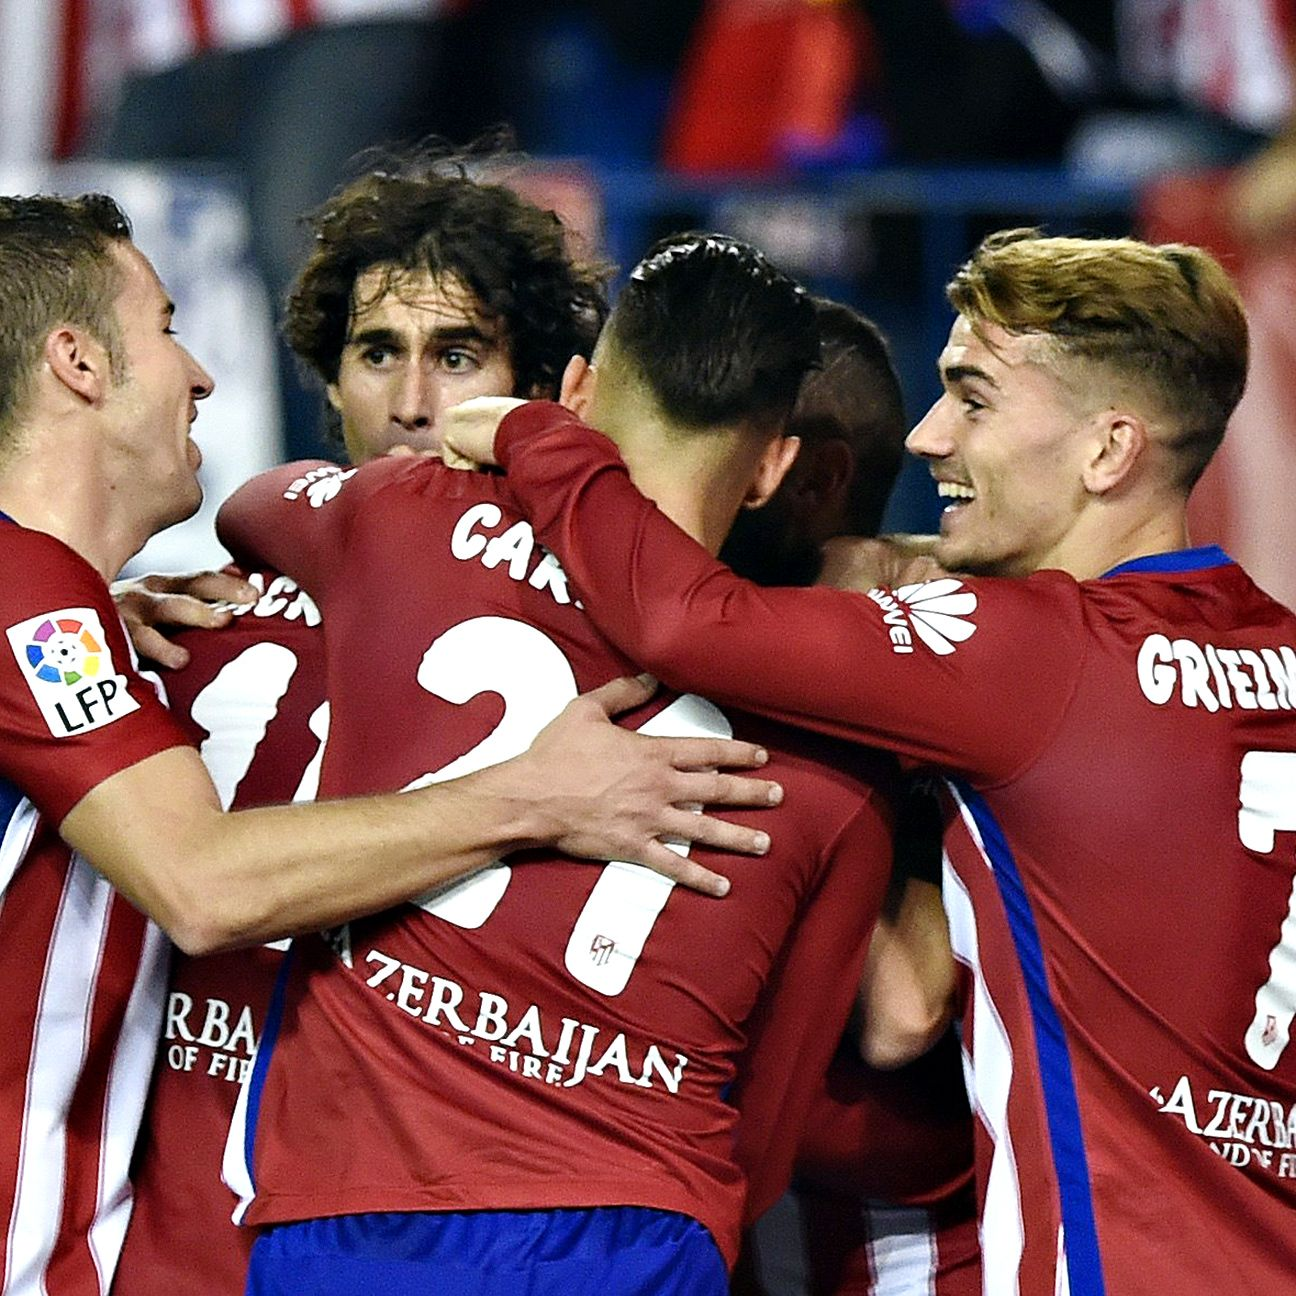 Atletico Madrid are just two points back of Real Madrid and Barcelona after Sunday's win.